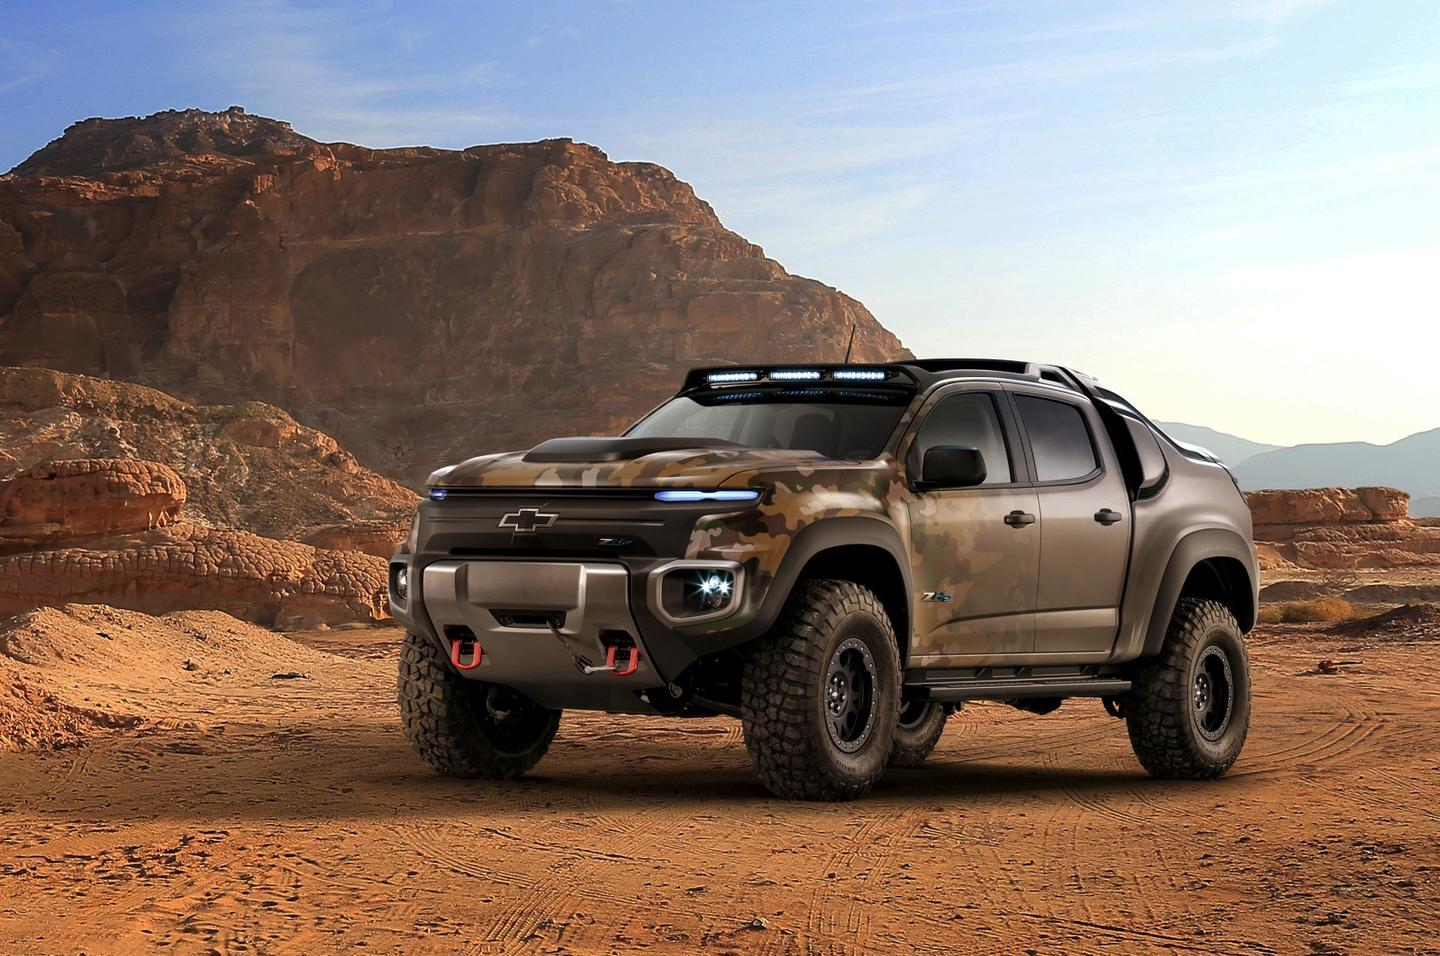 The Chevy Colorado ZH2 is a more extreme, off-road-ready pickup truck